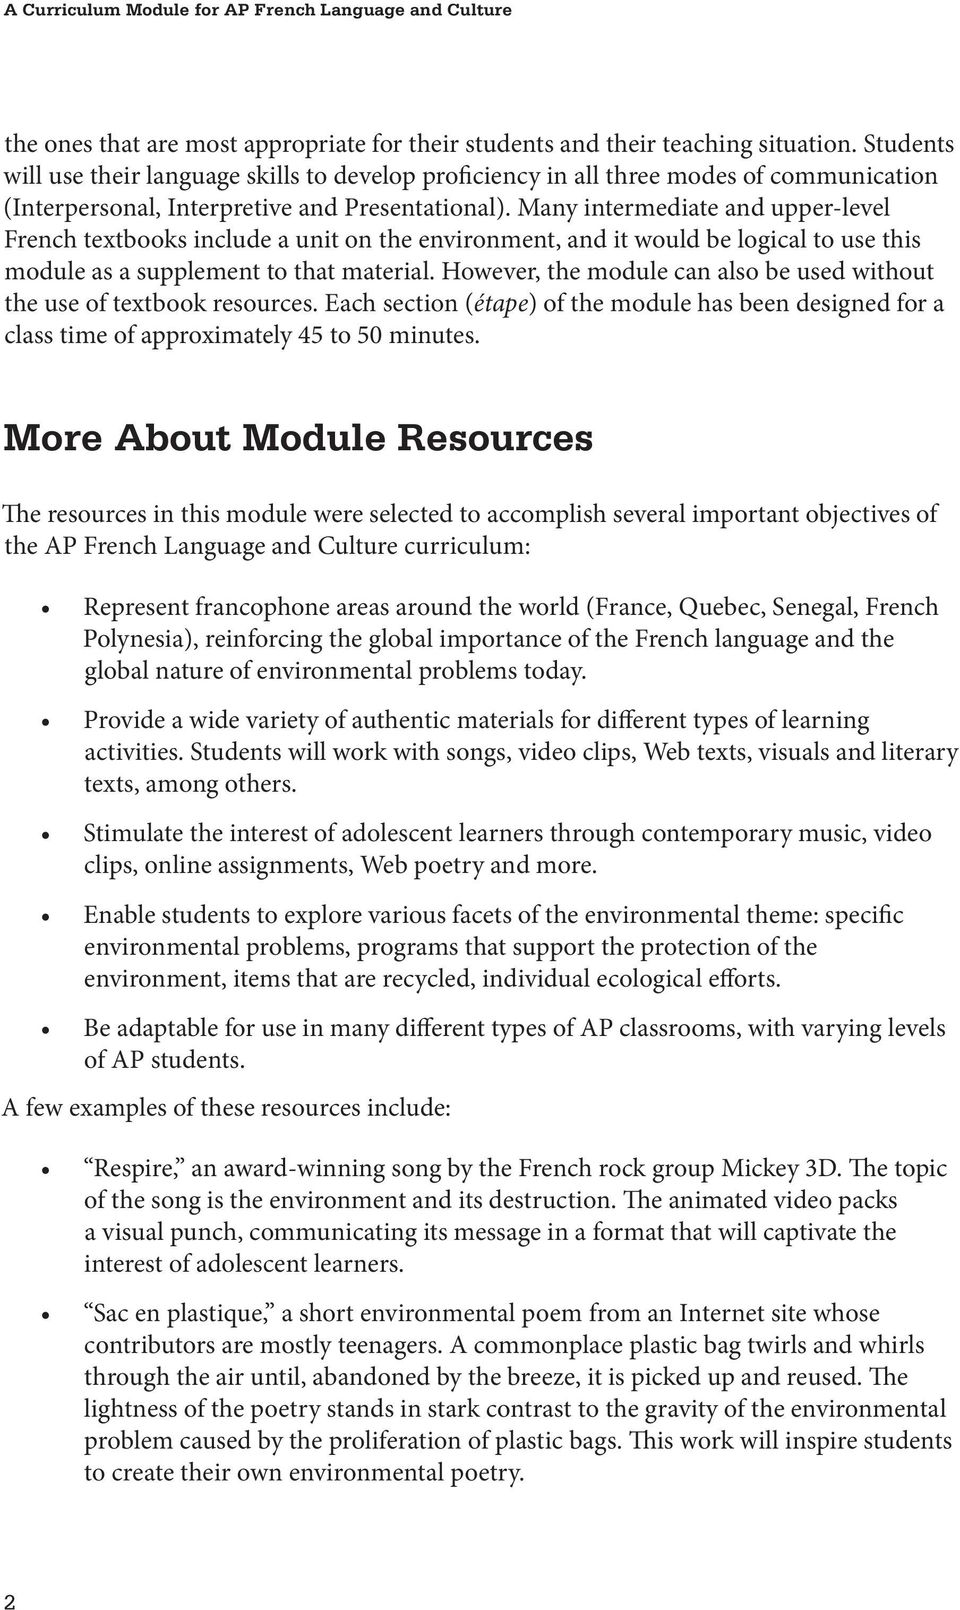 Many intermediate and upper-level French textbooks include a unit on the environment, and it would be logical to use this module as a supplement to that material.